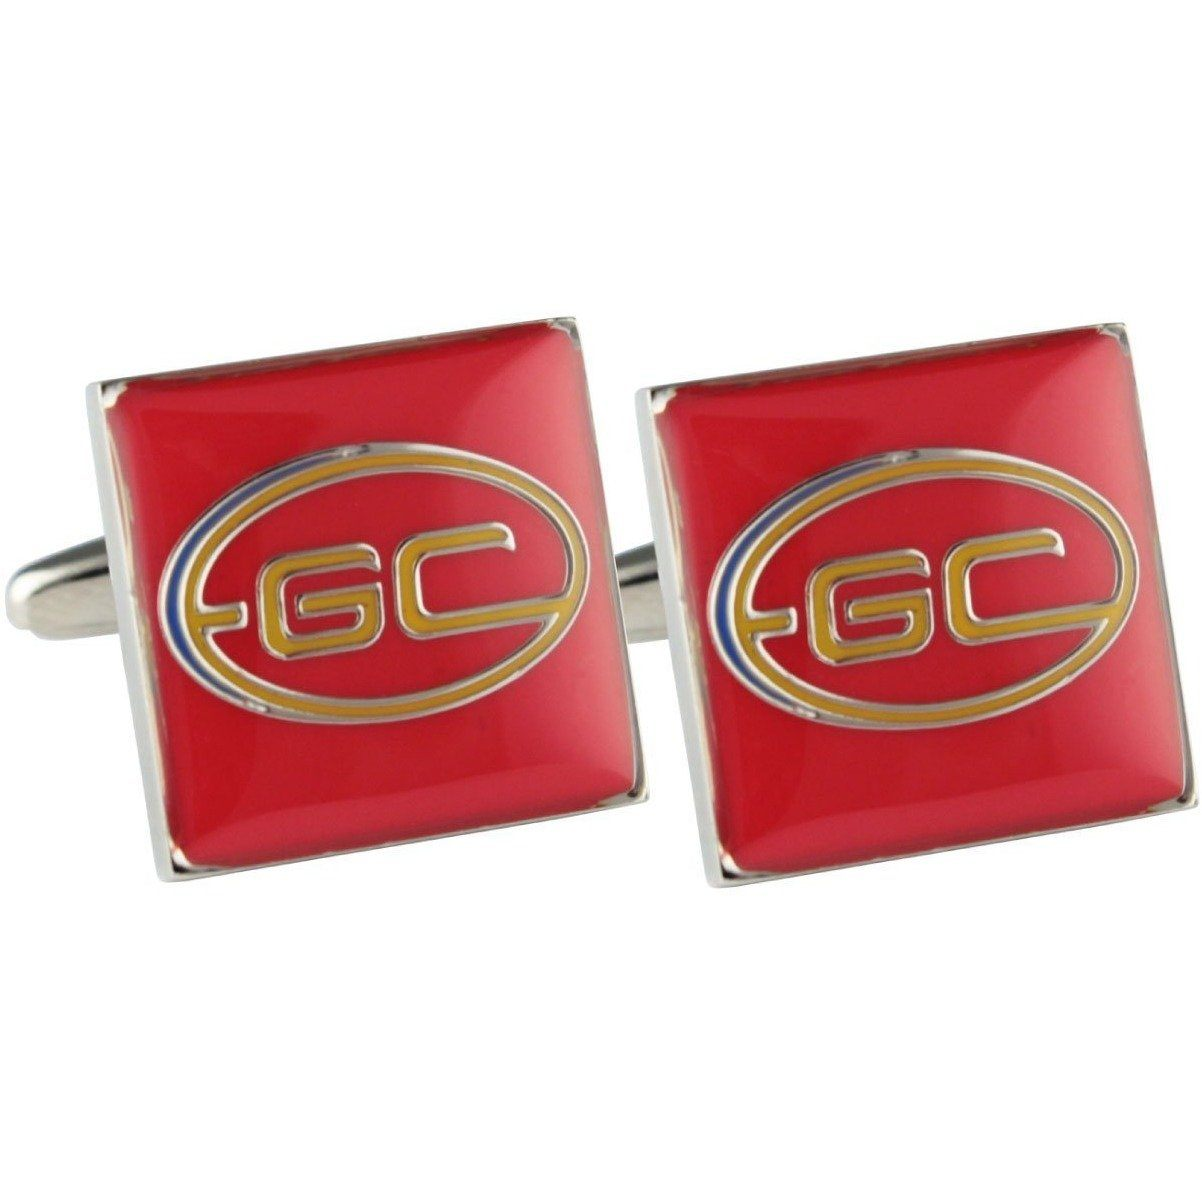 Colour Gold Coast Suns Cufflinks, Novelty Cufflinks, Cuffed.com.au, CL5041, $44.00